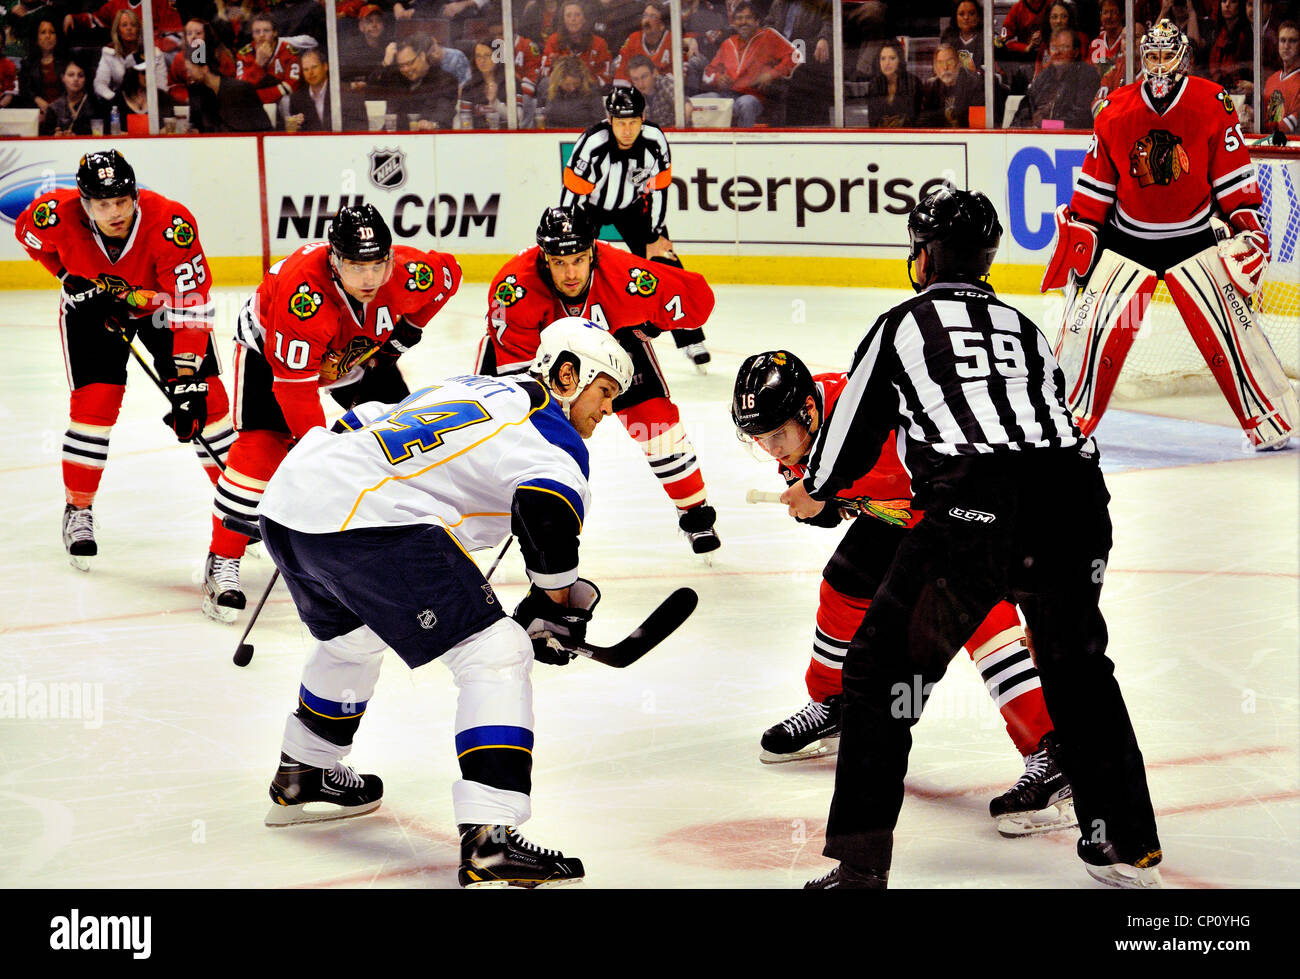 Faceoff during NHL's Chicago Blackhawks and St. Louis Blues. - Stock Image